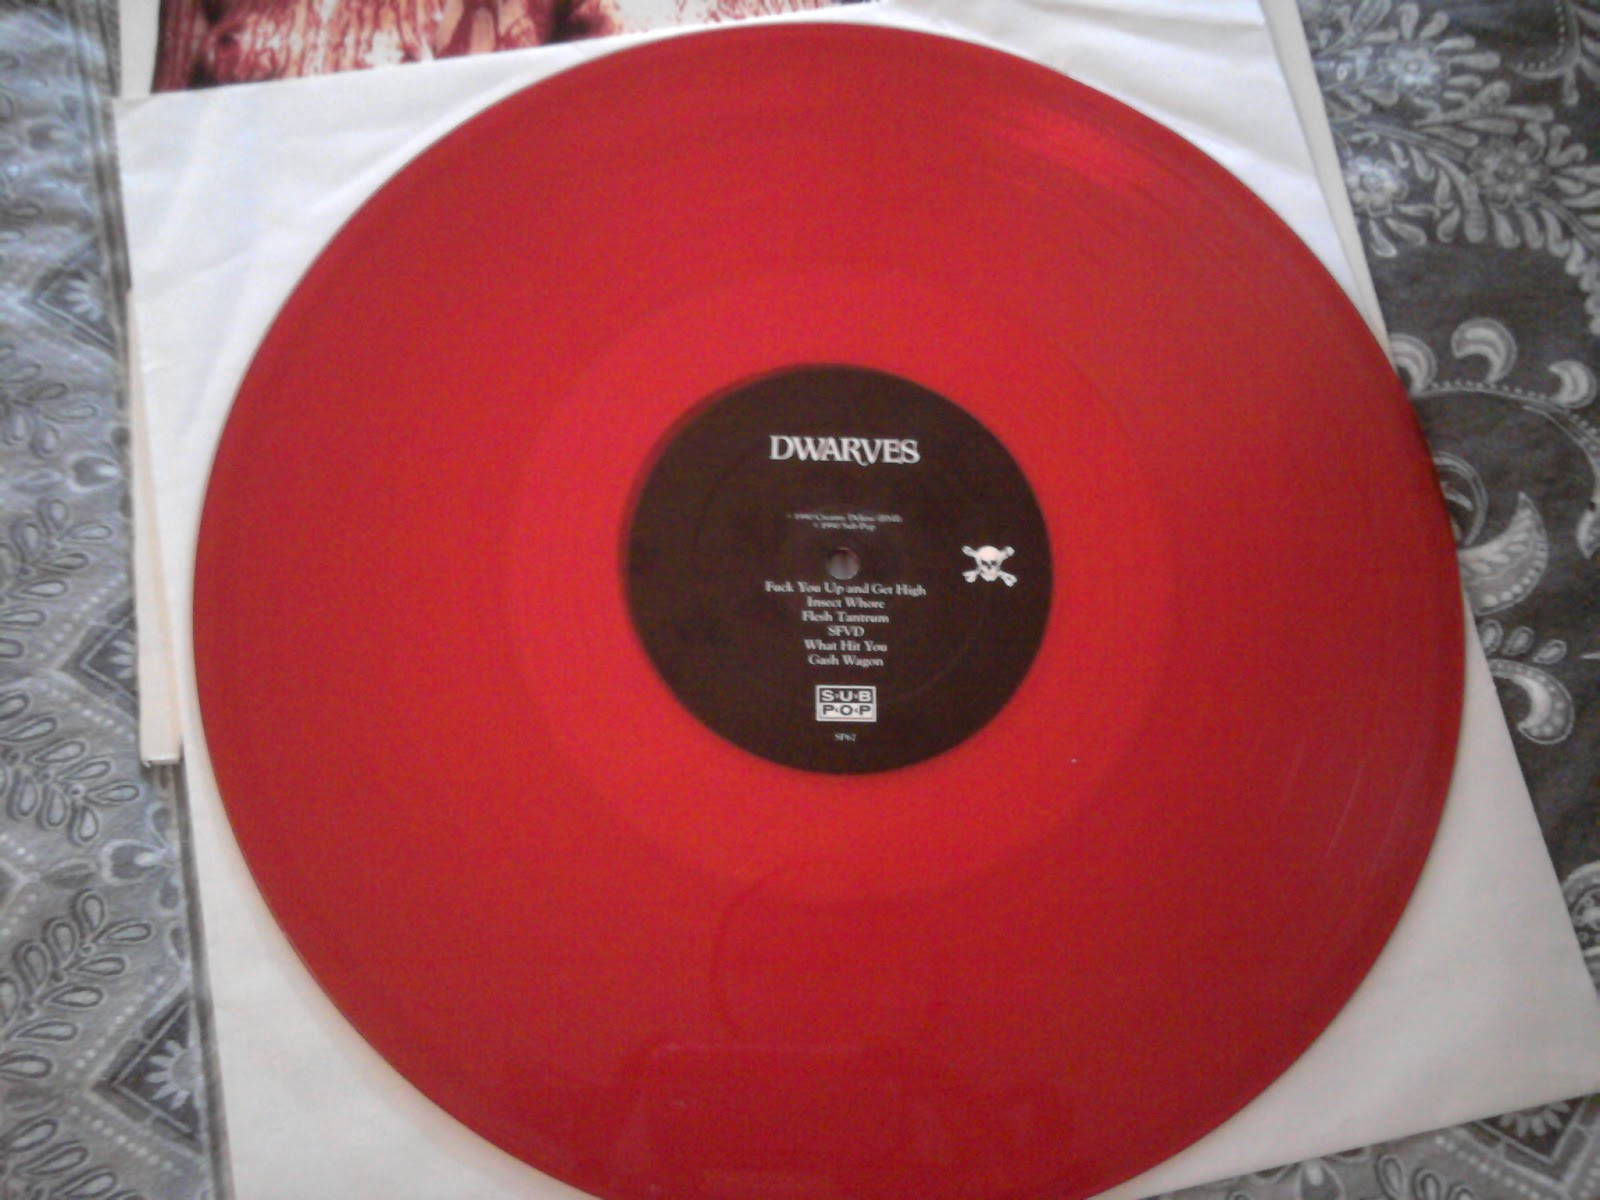 Snagged A Sweet Red Vinyl Dwarfs Record